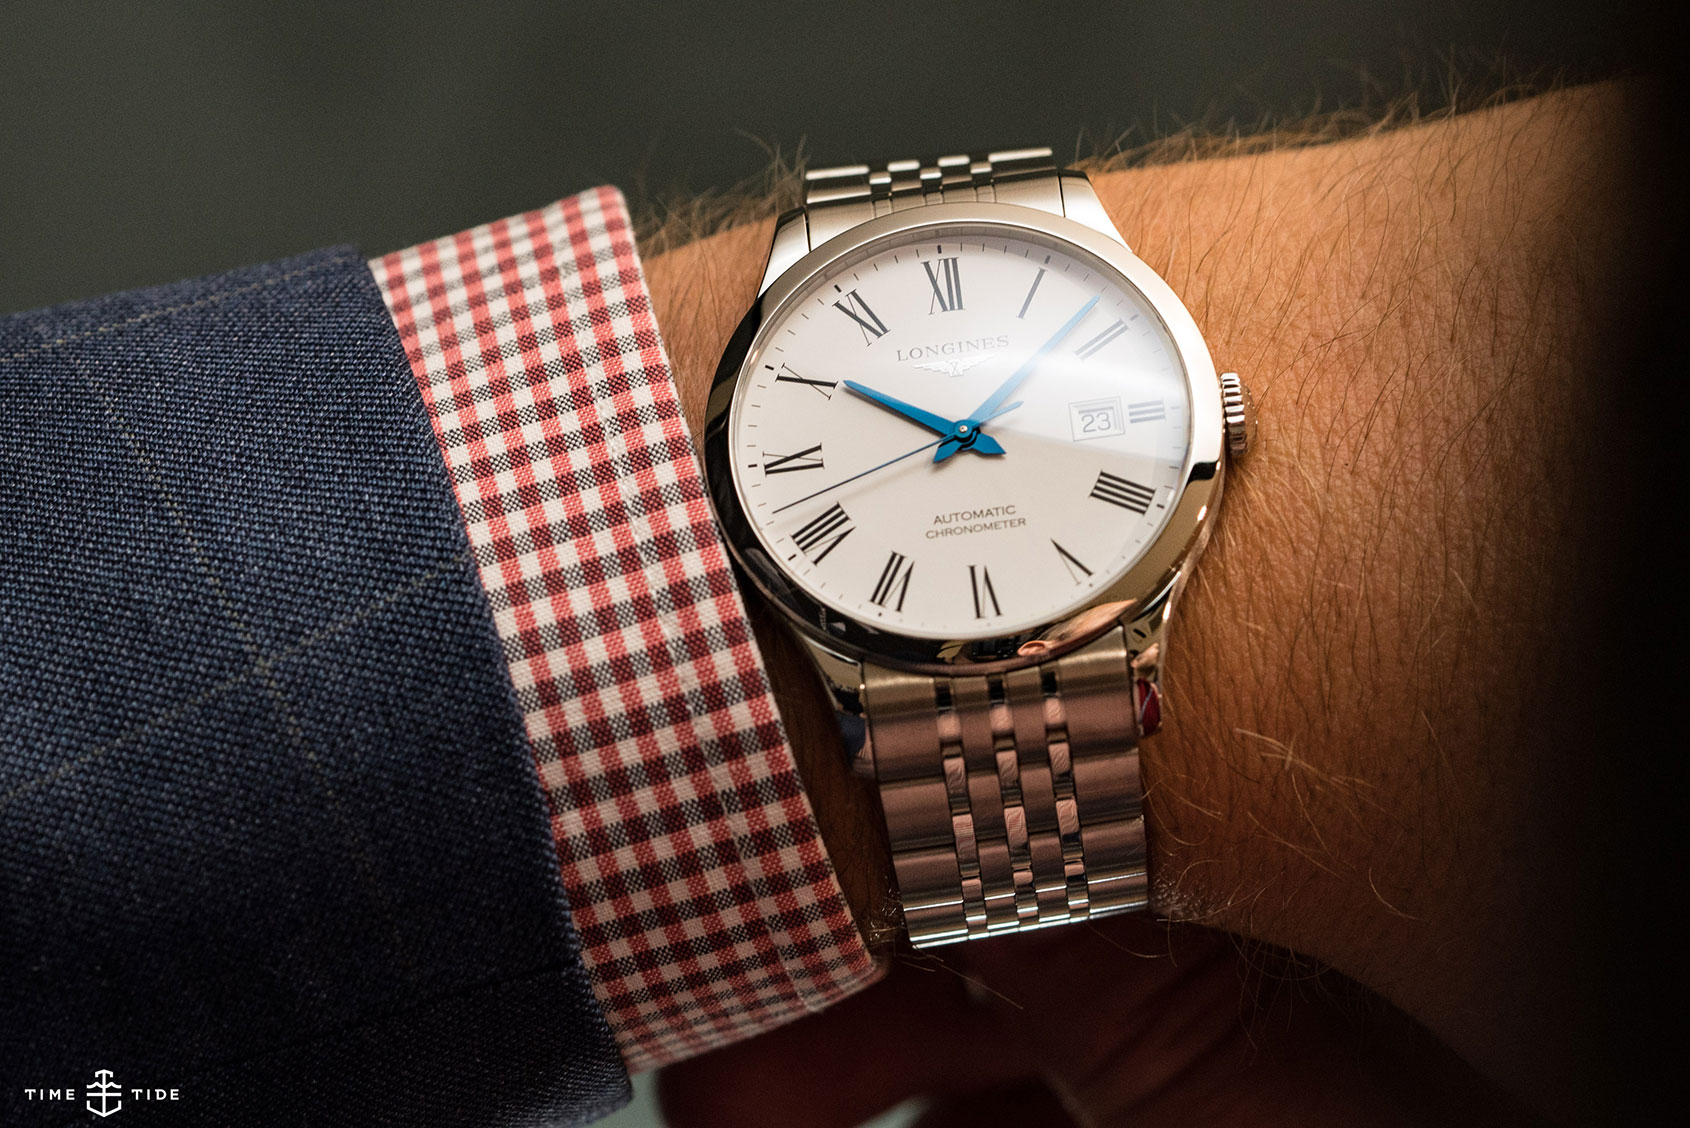 VIDEO: Exploring one of the most accessible COSC-certified collections on the market, the new Longines Record range